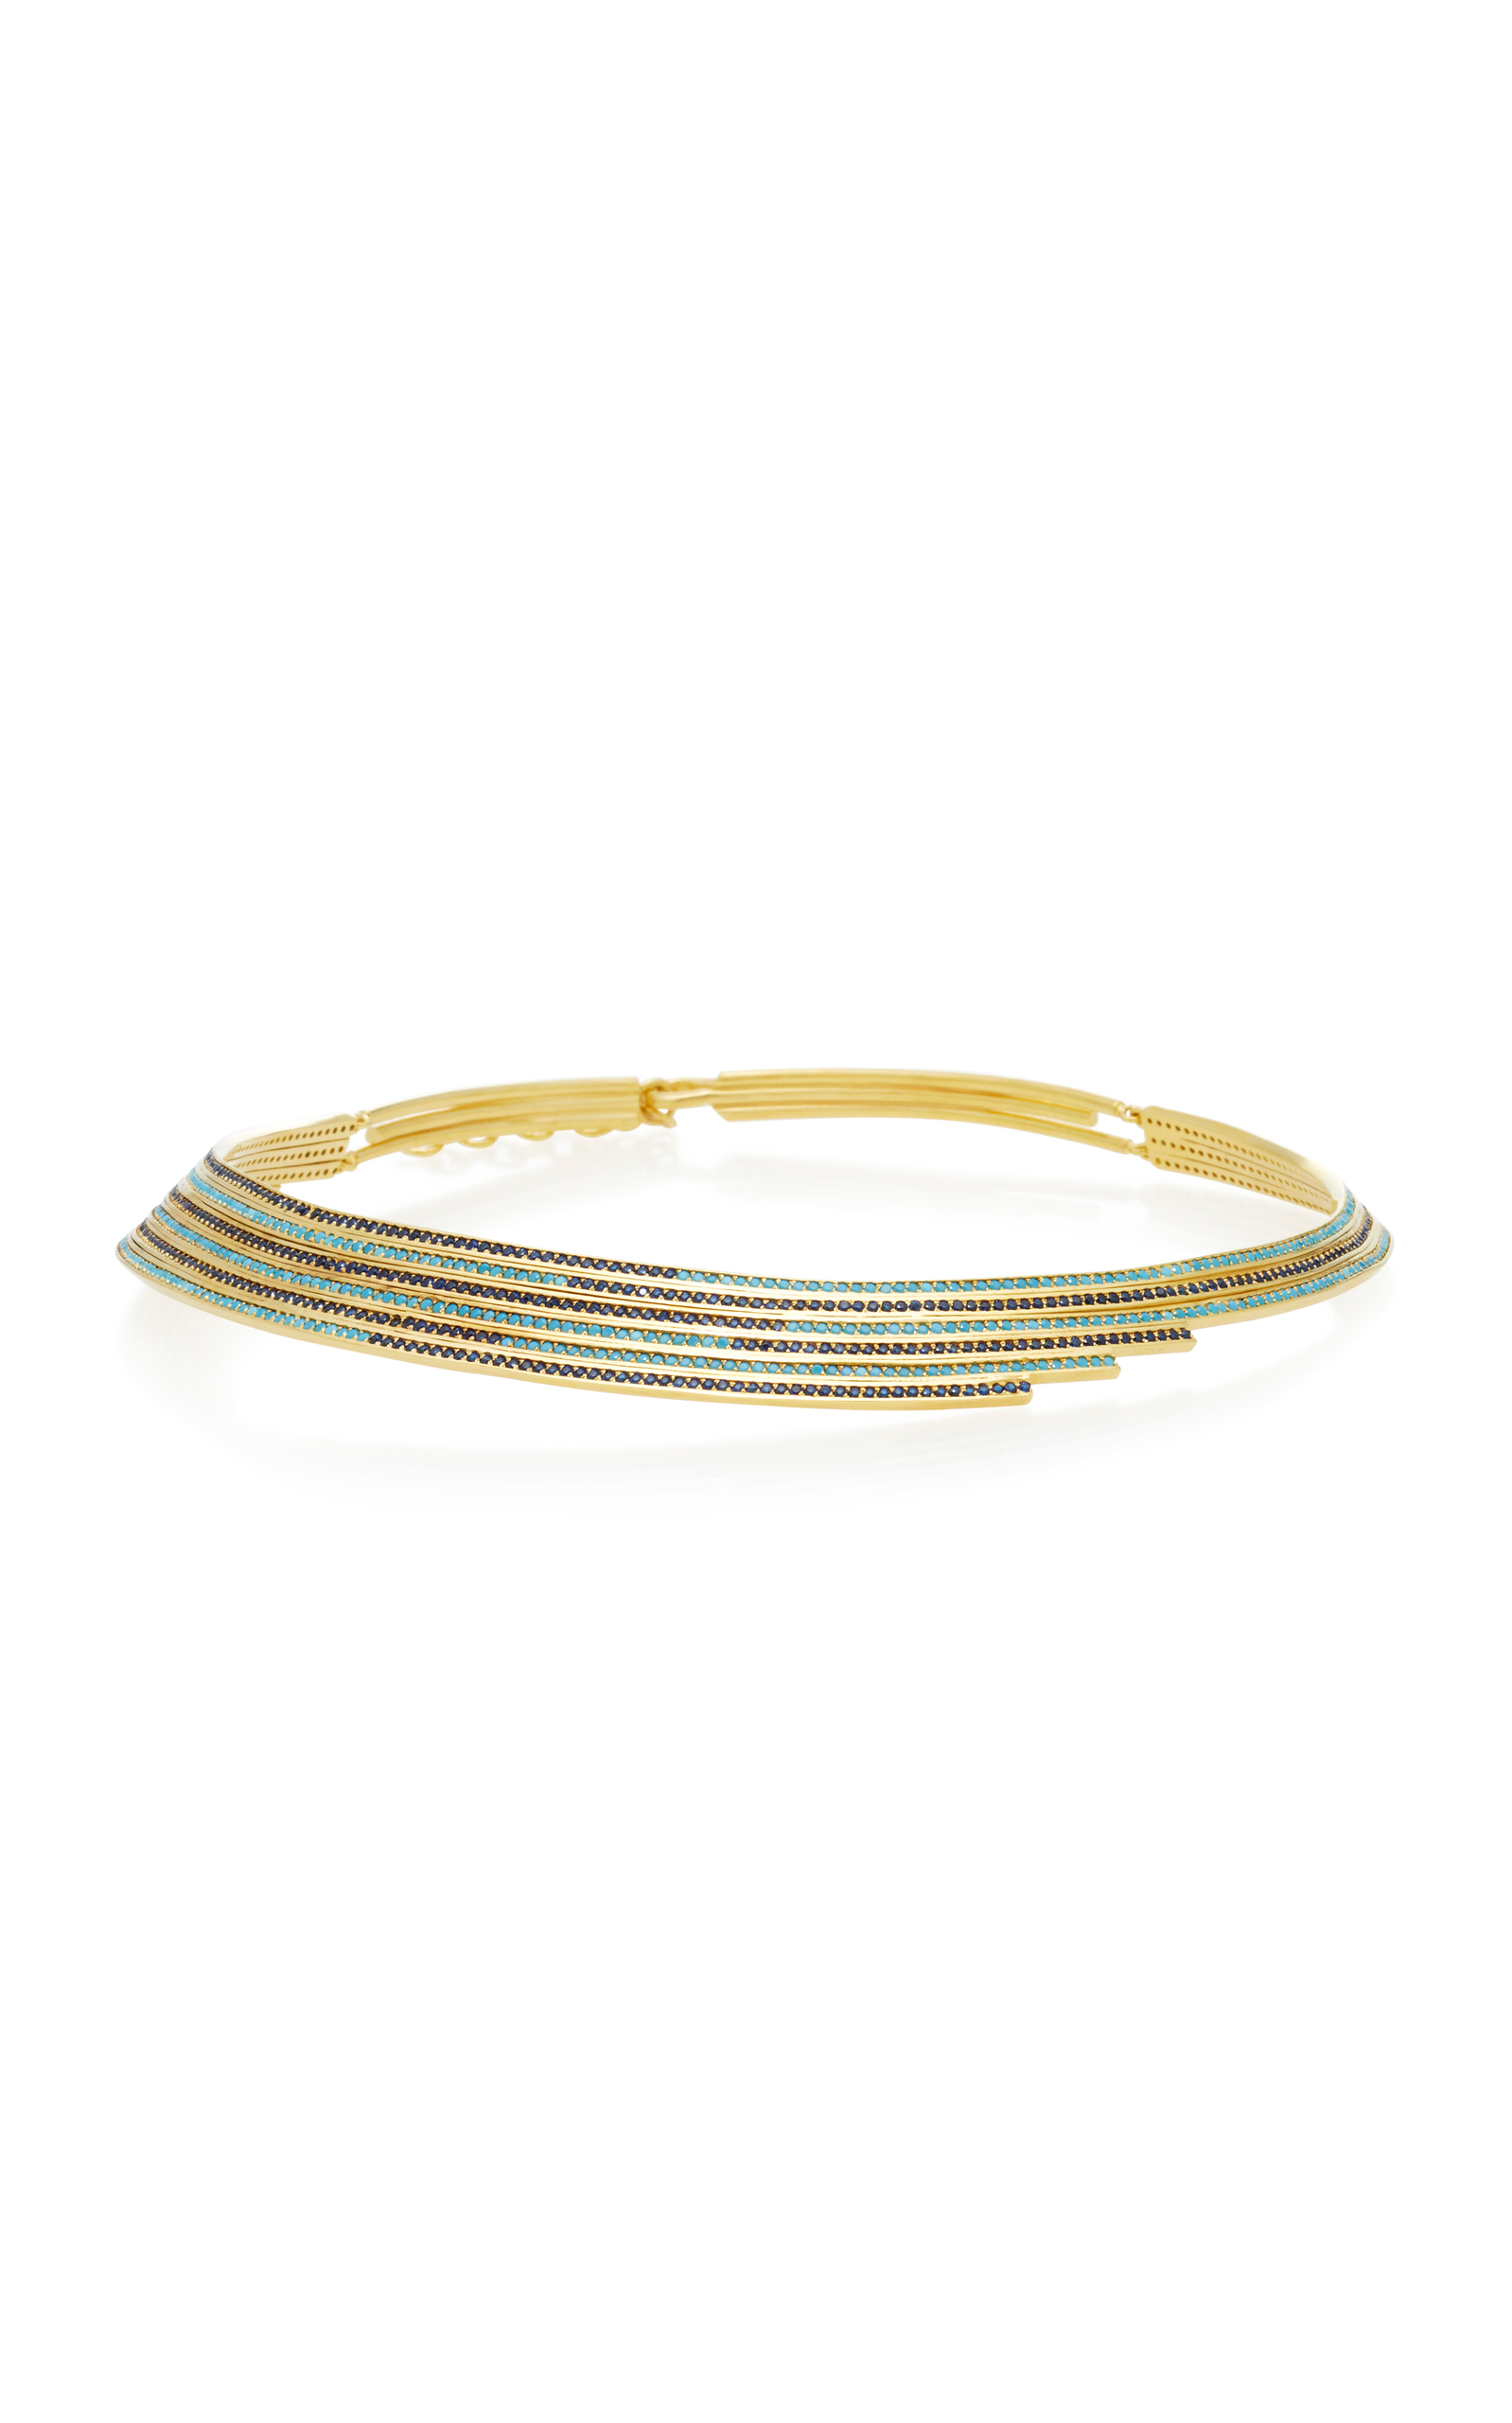 JOANNA LAURA CONSTANTINE GOLD-PLATED LINEAR NECKLACE